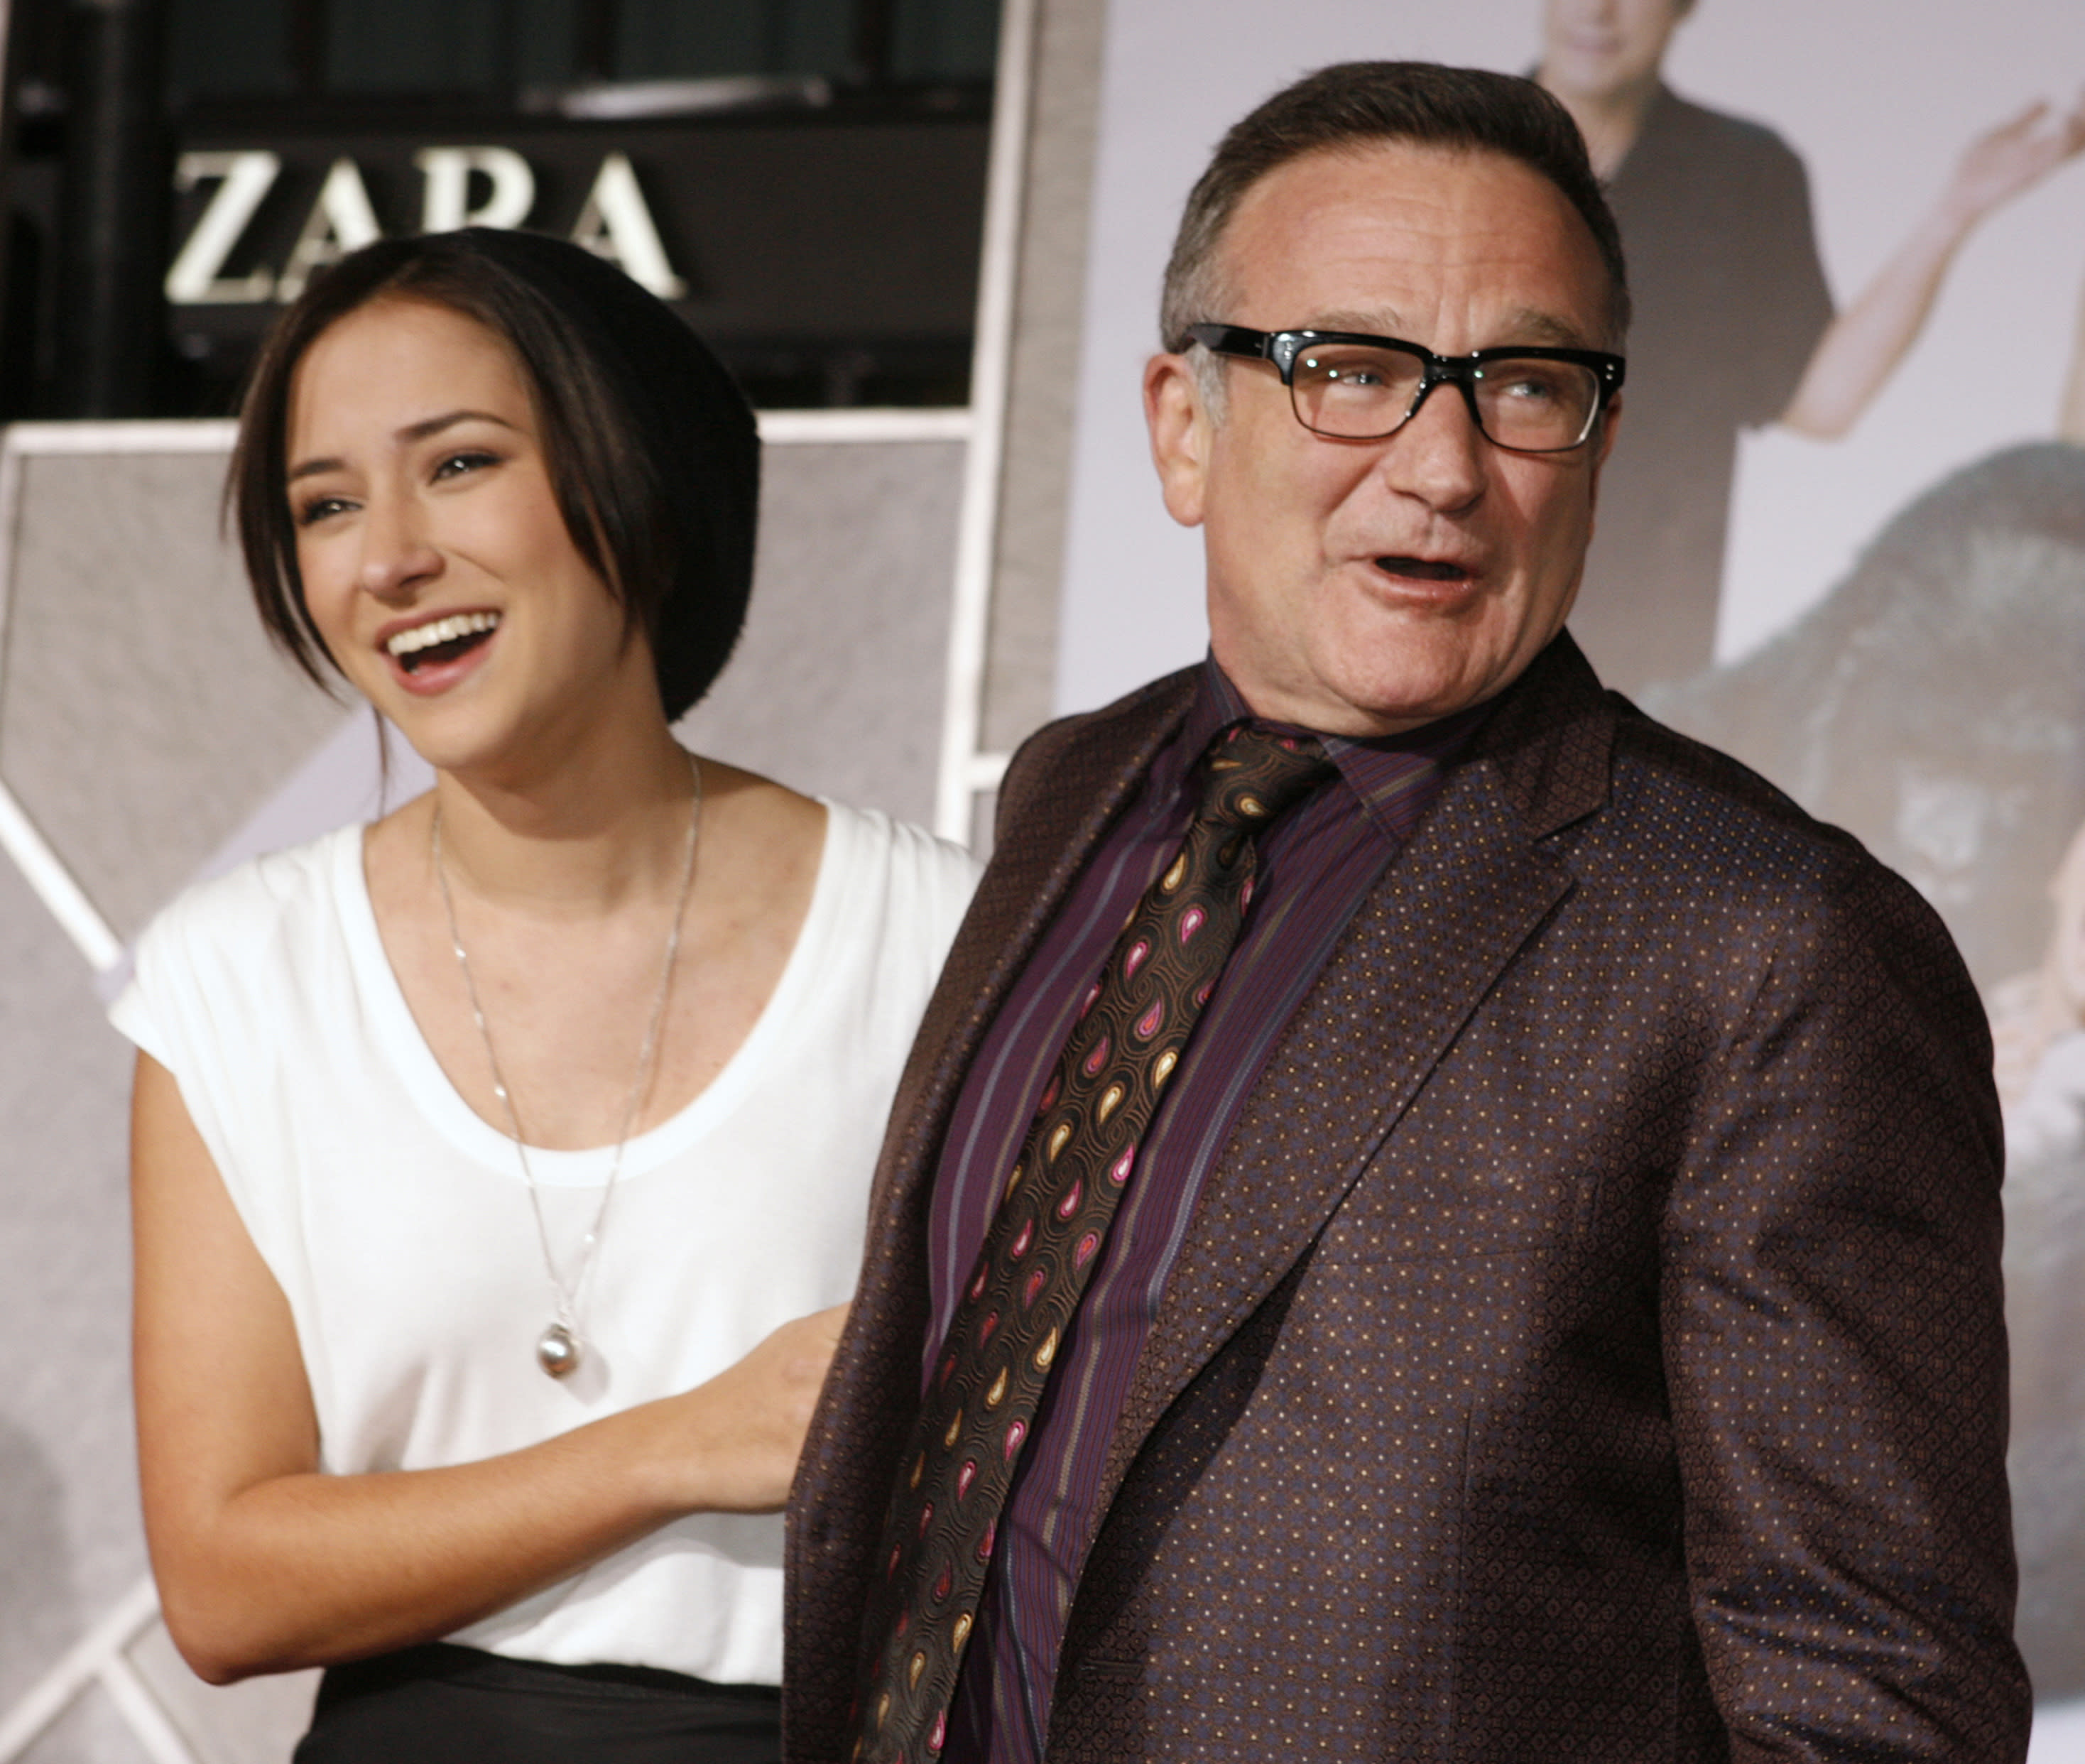 Zelda Williams turns 30 with powerful post: 'I leave behind one of the worst days of my life'